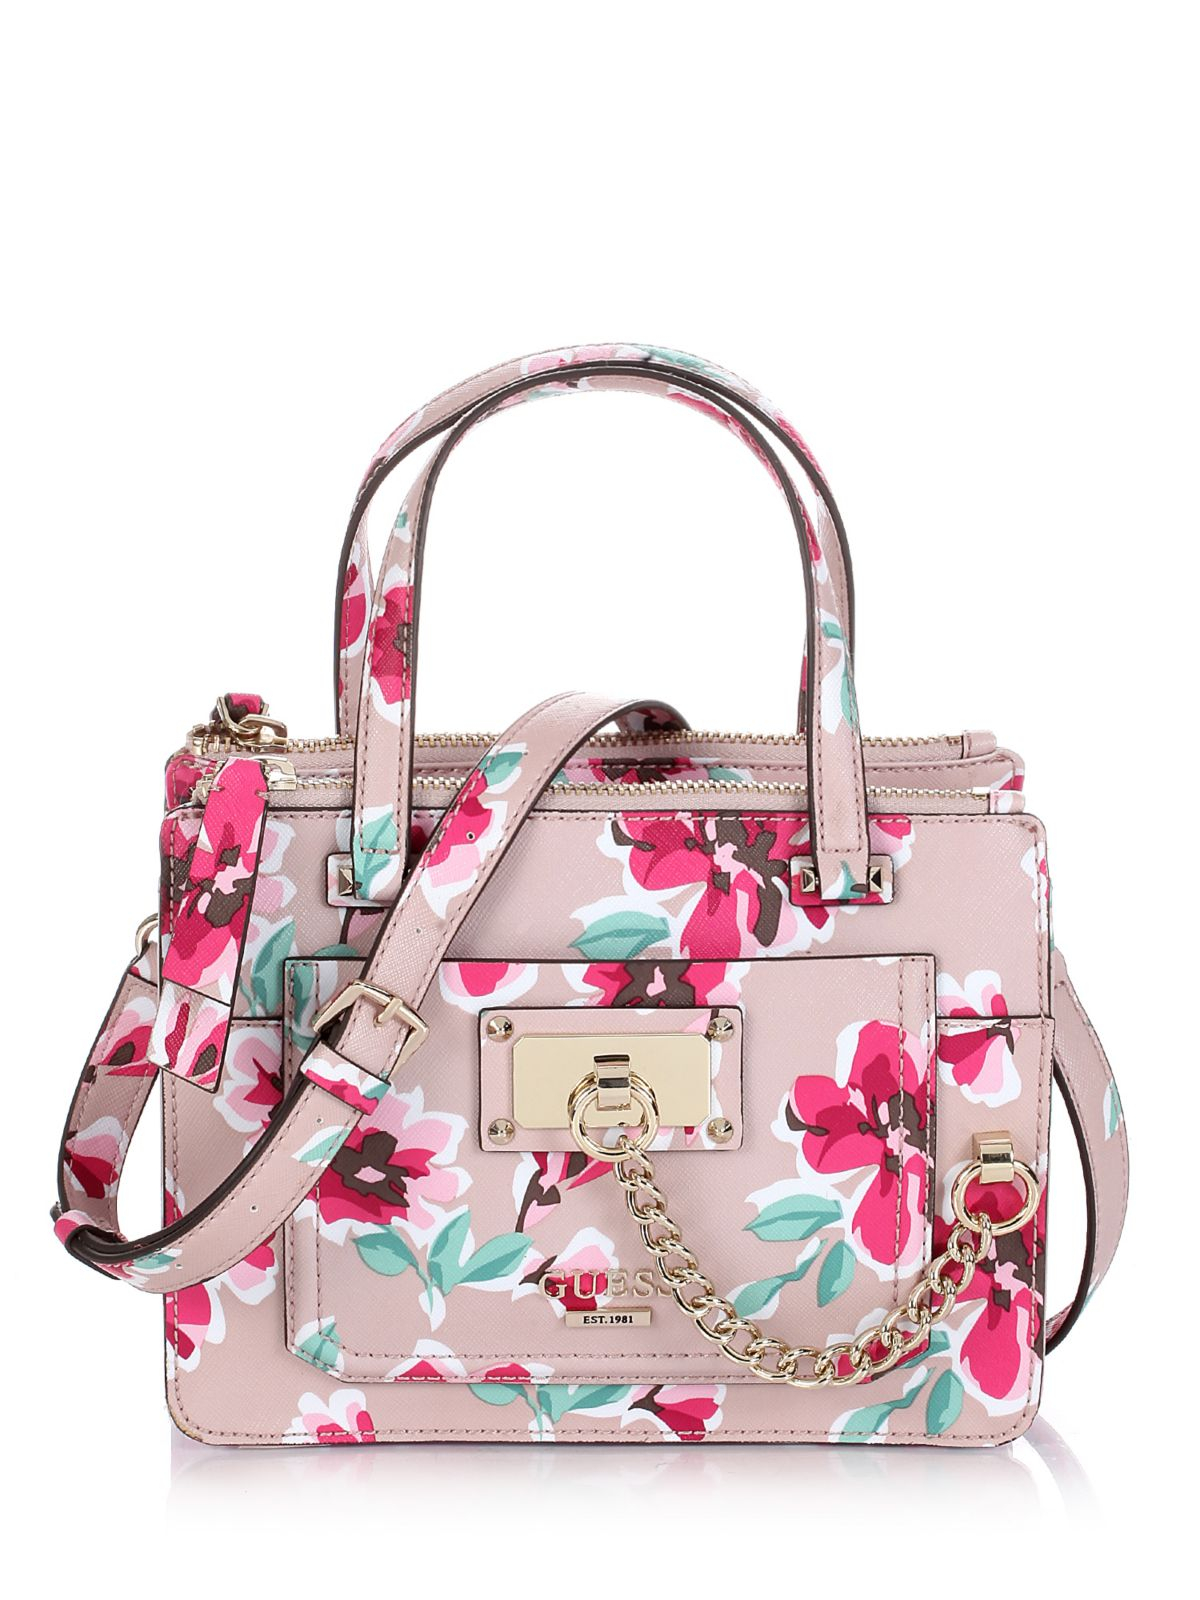 Guess Forget Me Not Little Status Satchel Floral Bag | Lyst